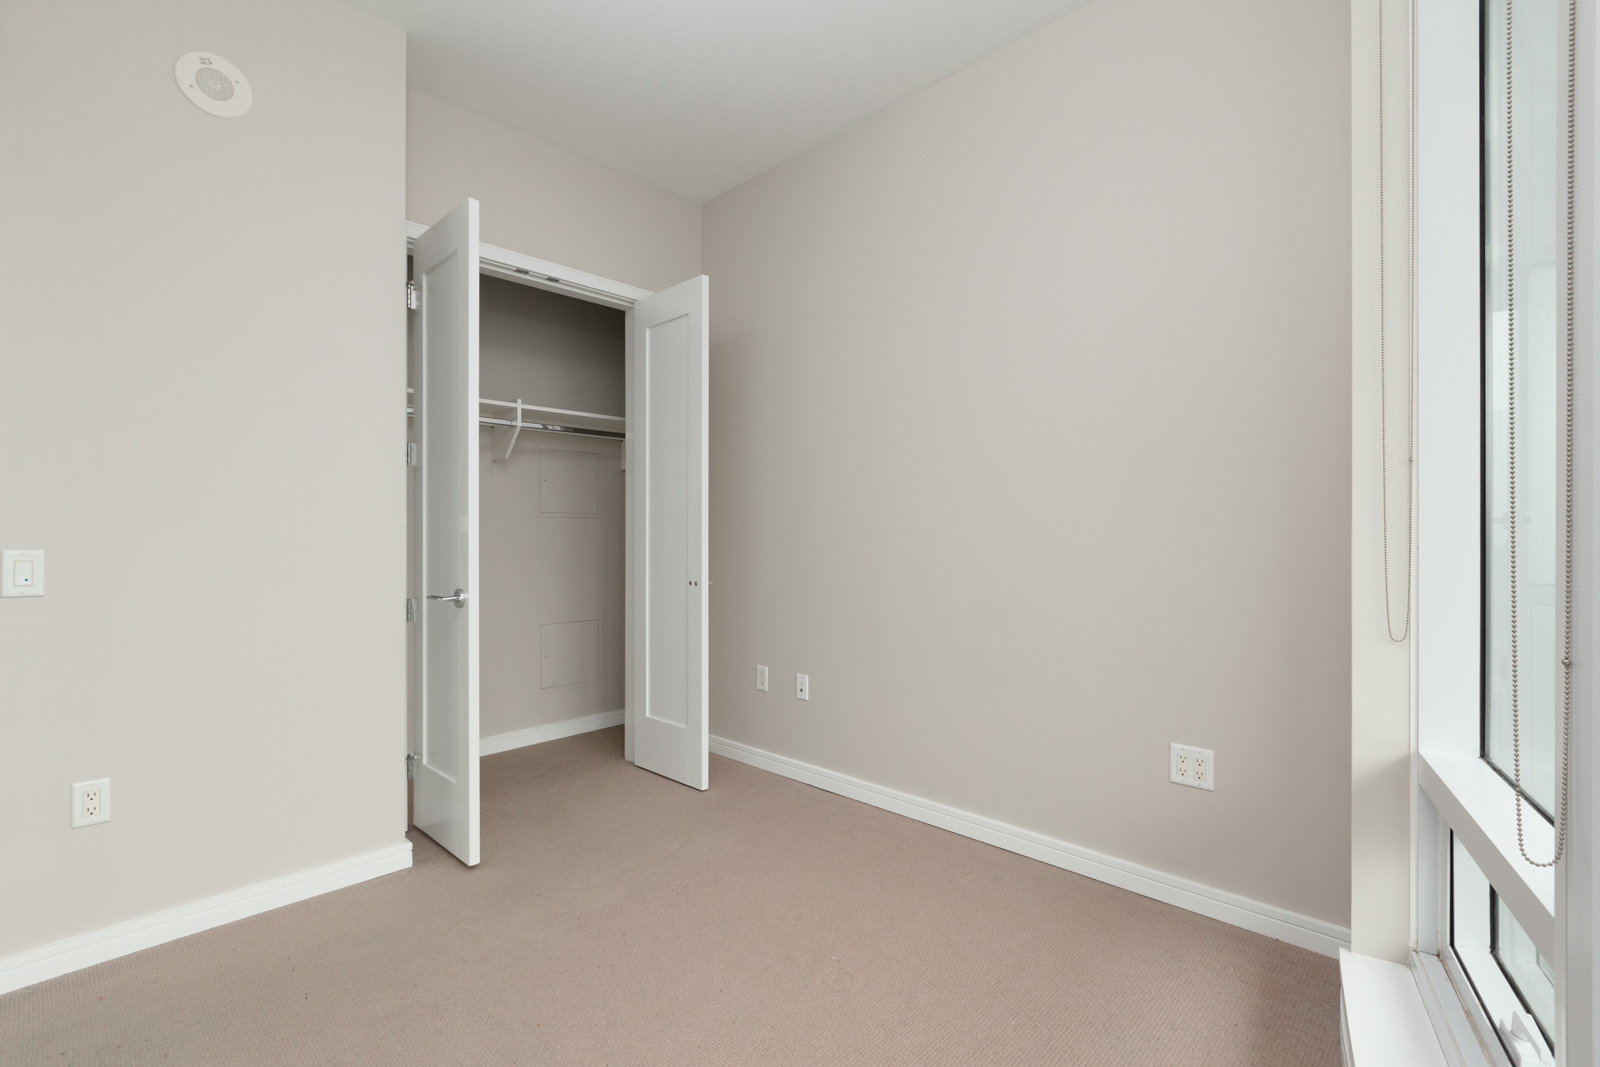 bedroom view and a shot of the closet room at 1633 ontario street, vancouver, condo